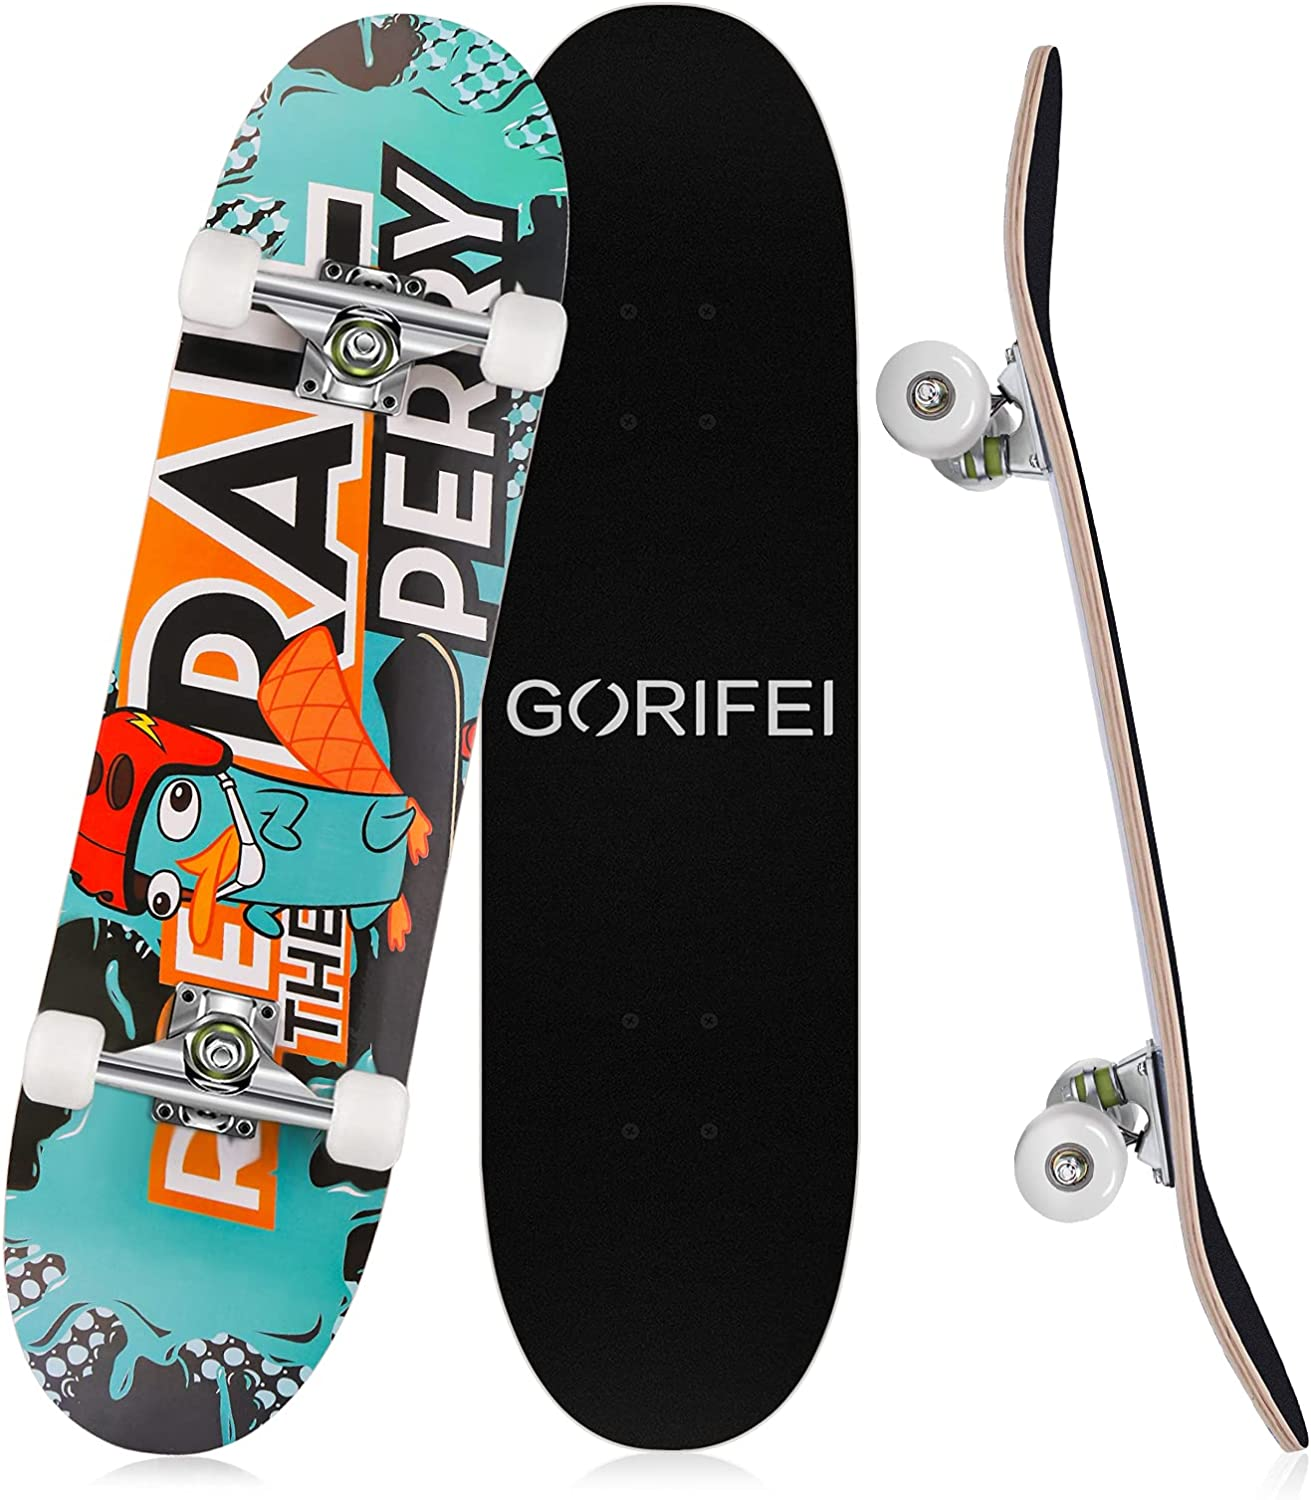 GORIFEI Standard Oklahoma City Mall Skateboard for Girls Inch Popular shop is the lowest price challenge Kids Boys 31 Adults